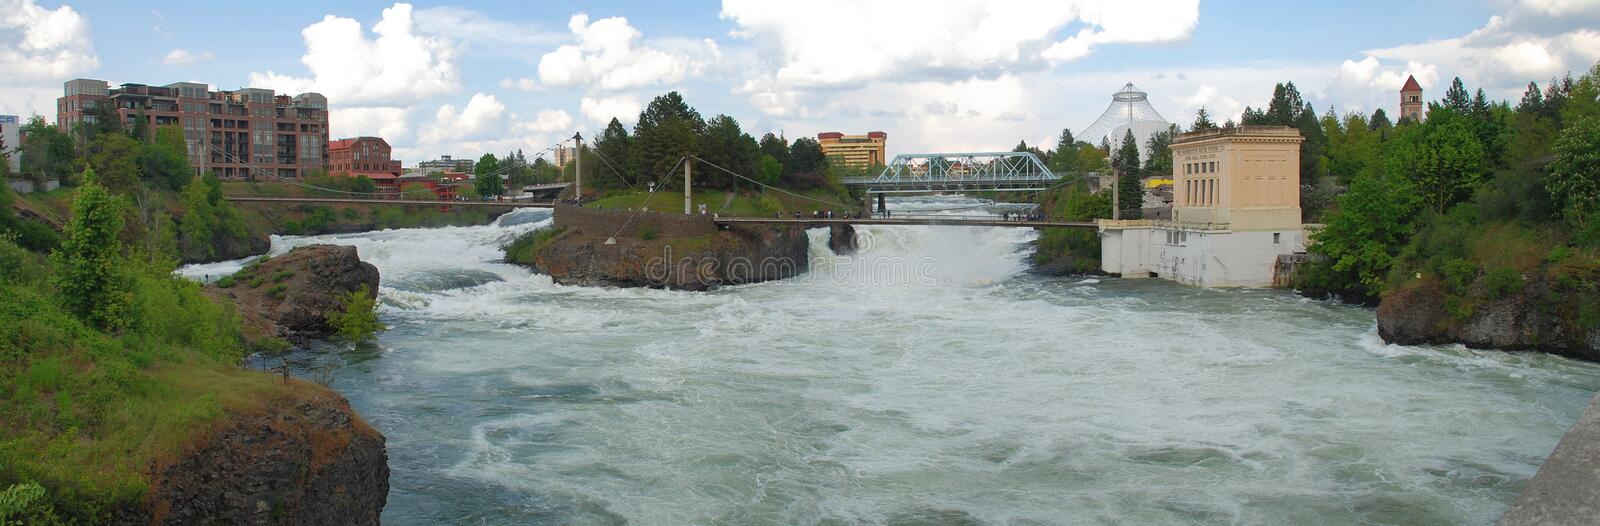 Spokane-Fälle - Spokane, Washington stockbild